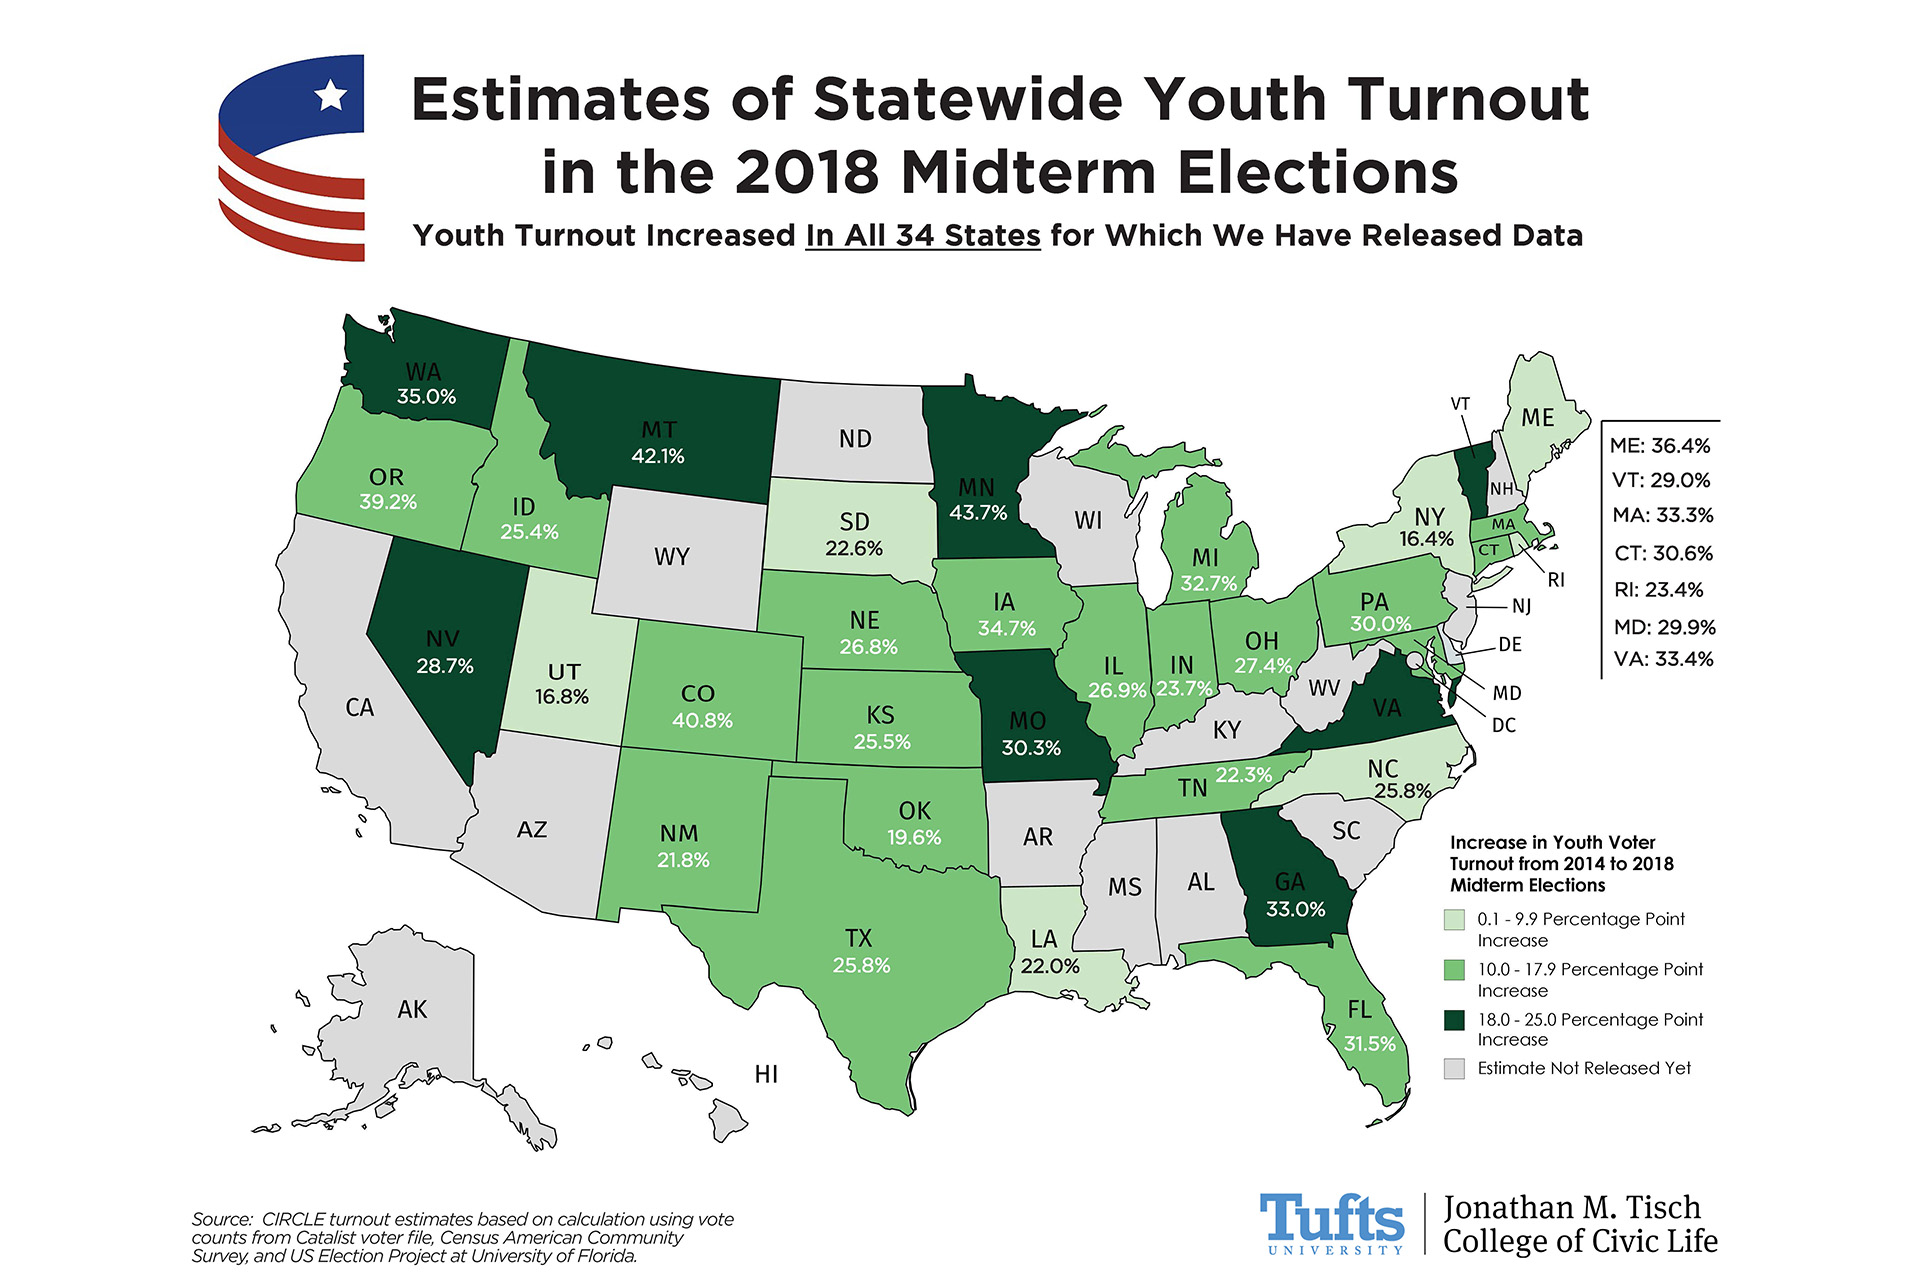 Map of the United States showing 2018 youth turnout in 34 states